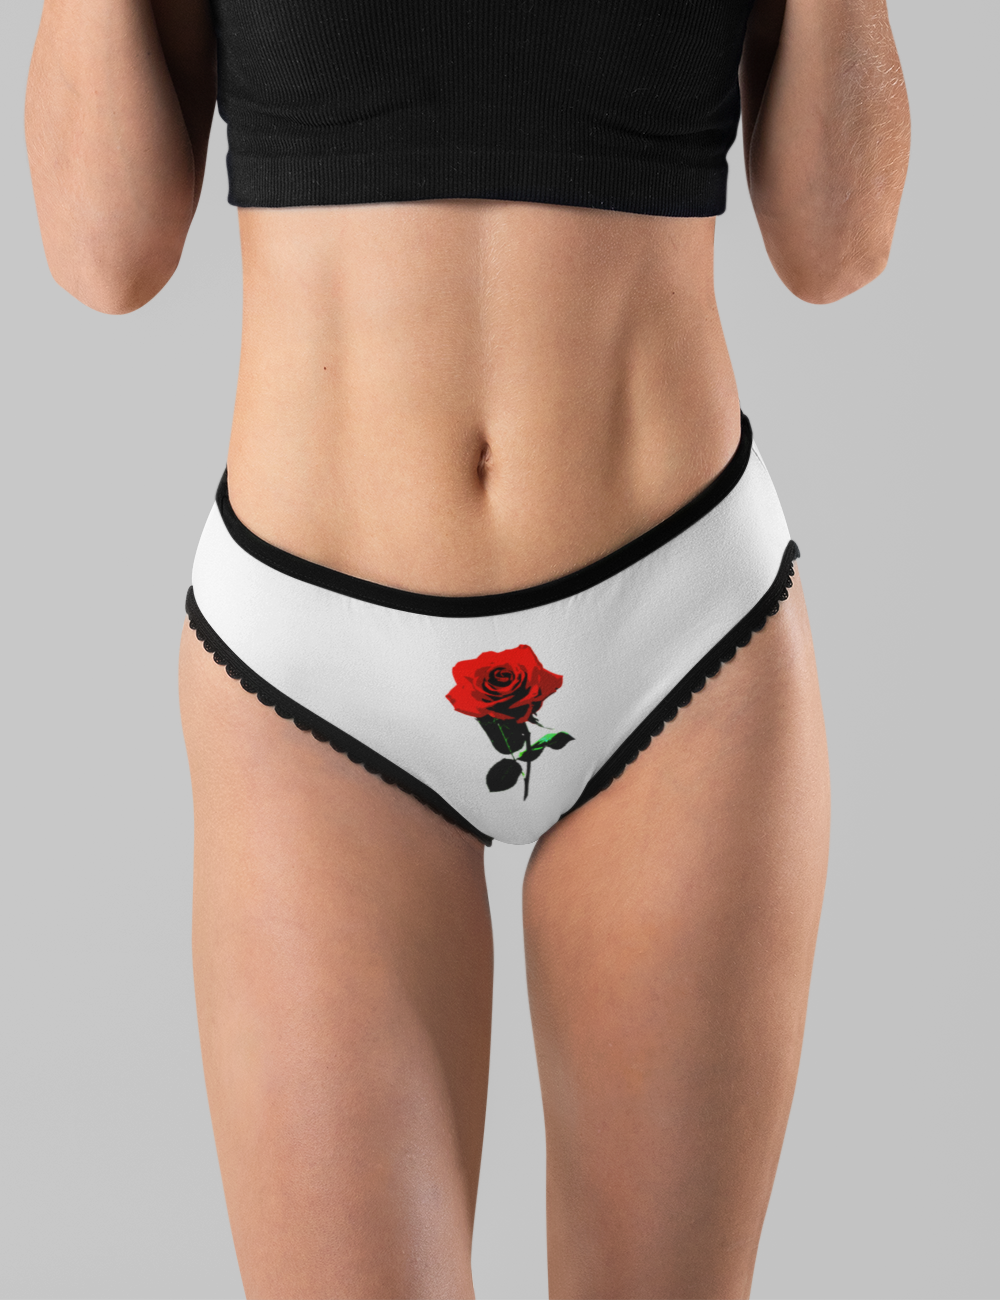 Red Rose Women's Intimate Briefs